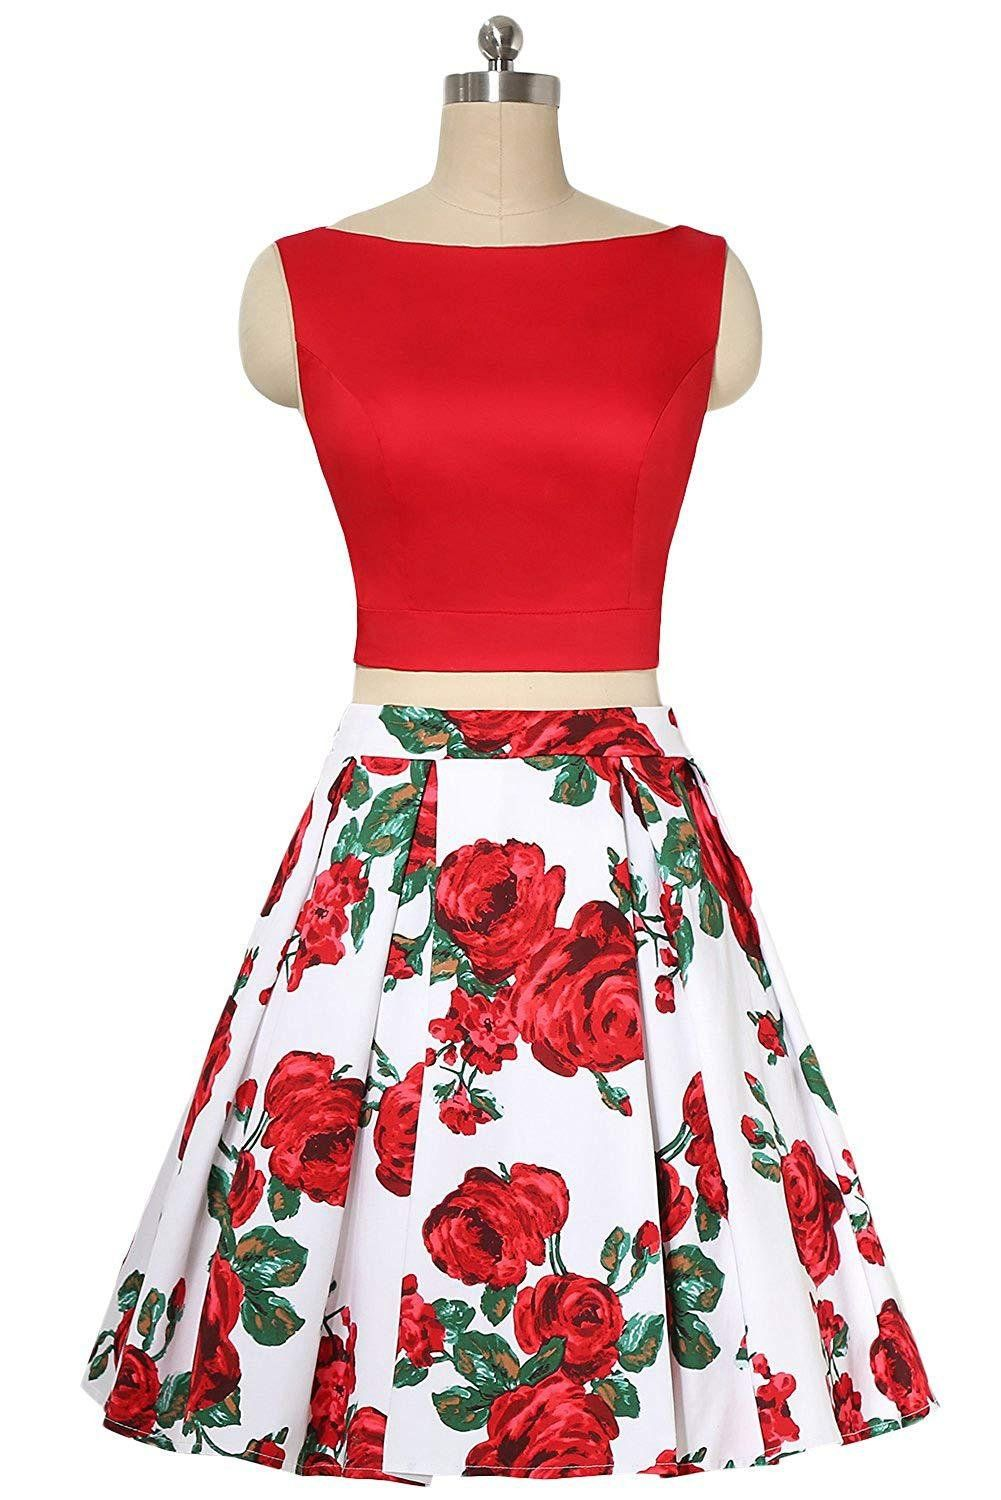 e6b90af524e 2018 Womens Homecoming Dresses Short Two Piece Cocktail Gowns ...